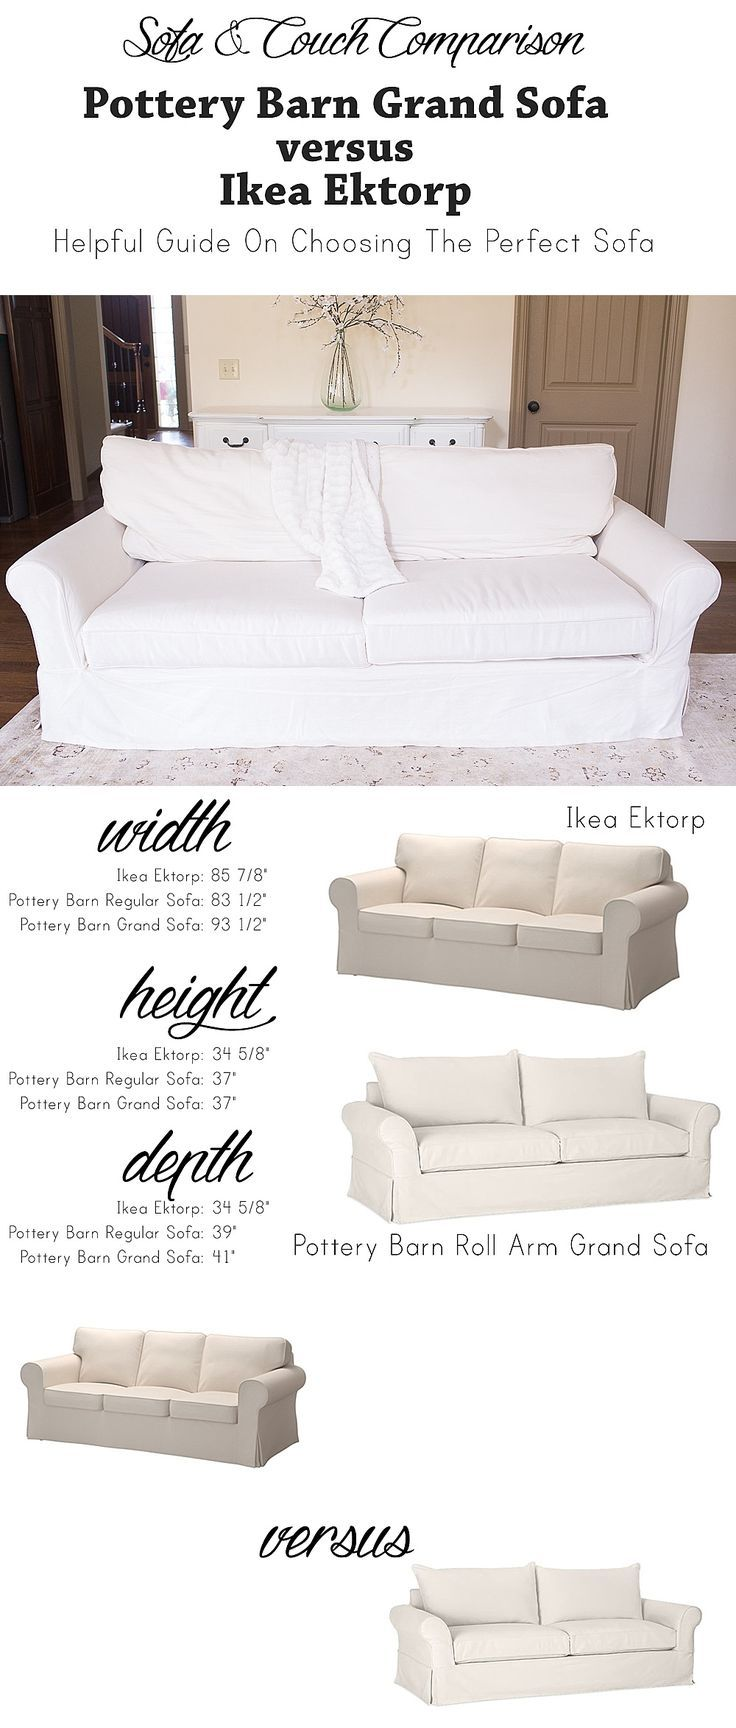 How To Choose A Sofa Ikea Ektorp Sofa Vs Pottery Barn Grand Sofa